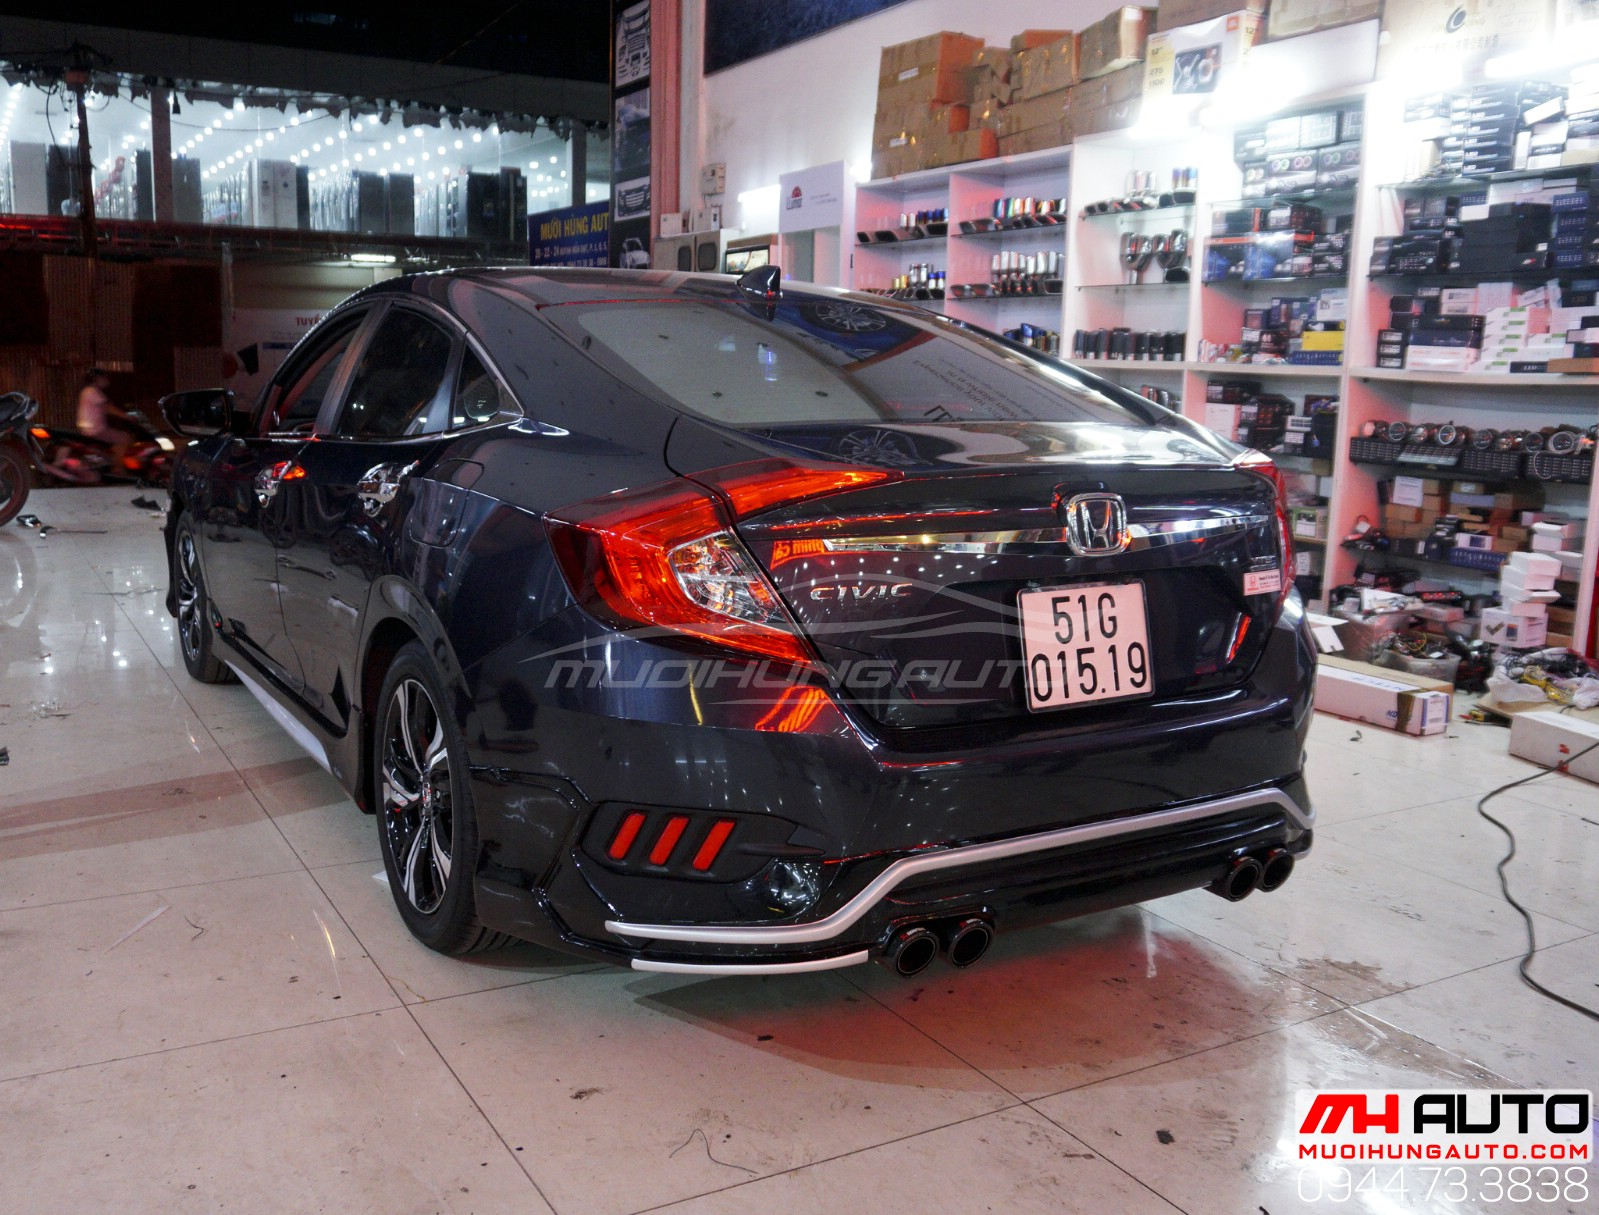 body Kit Honda Civic 14